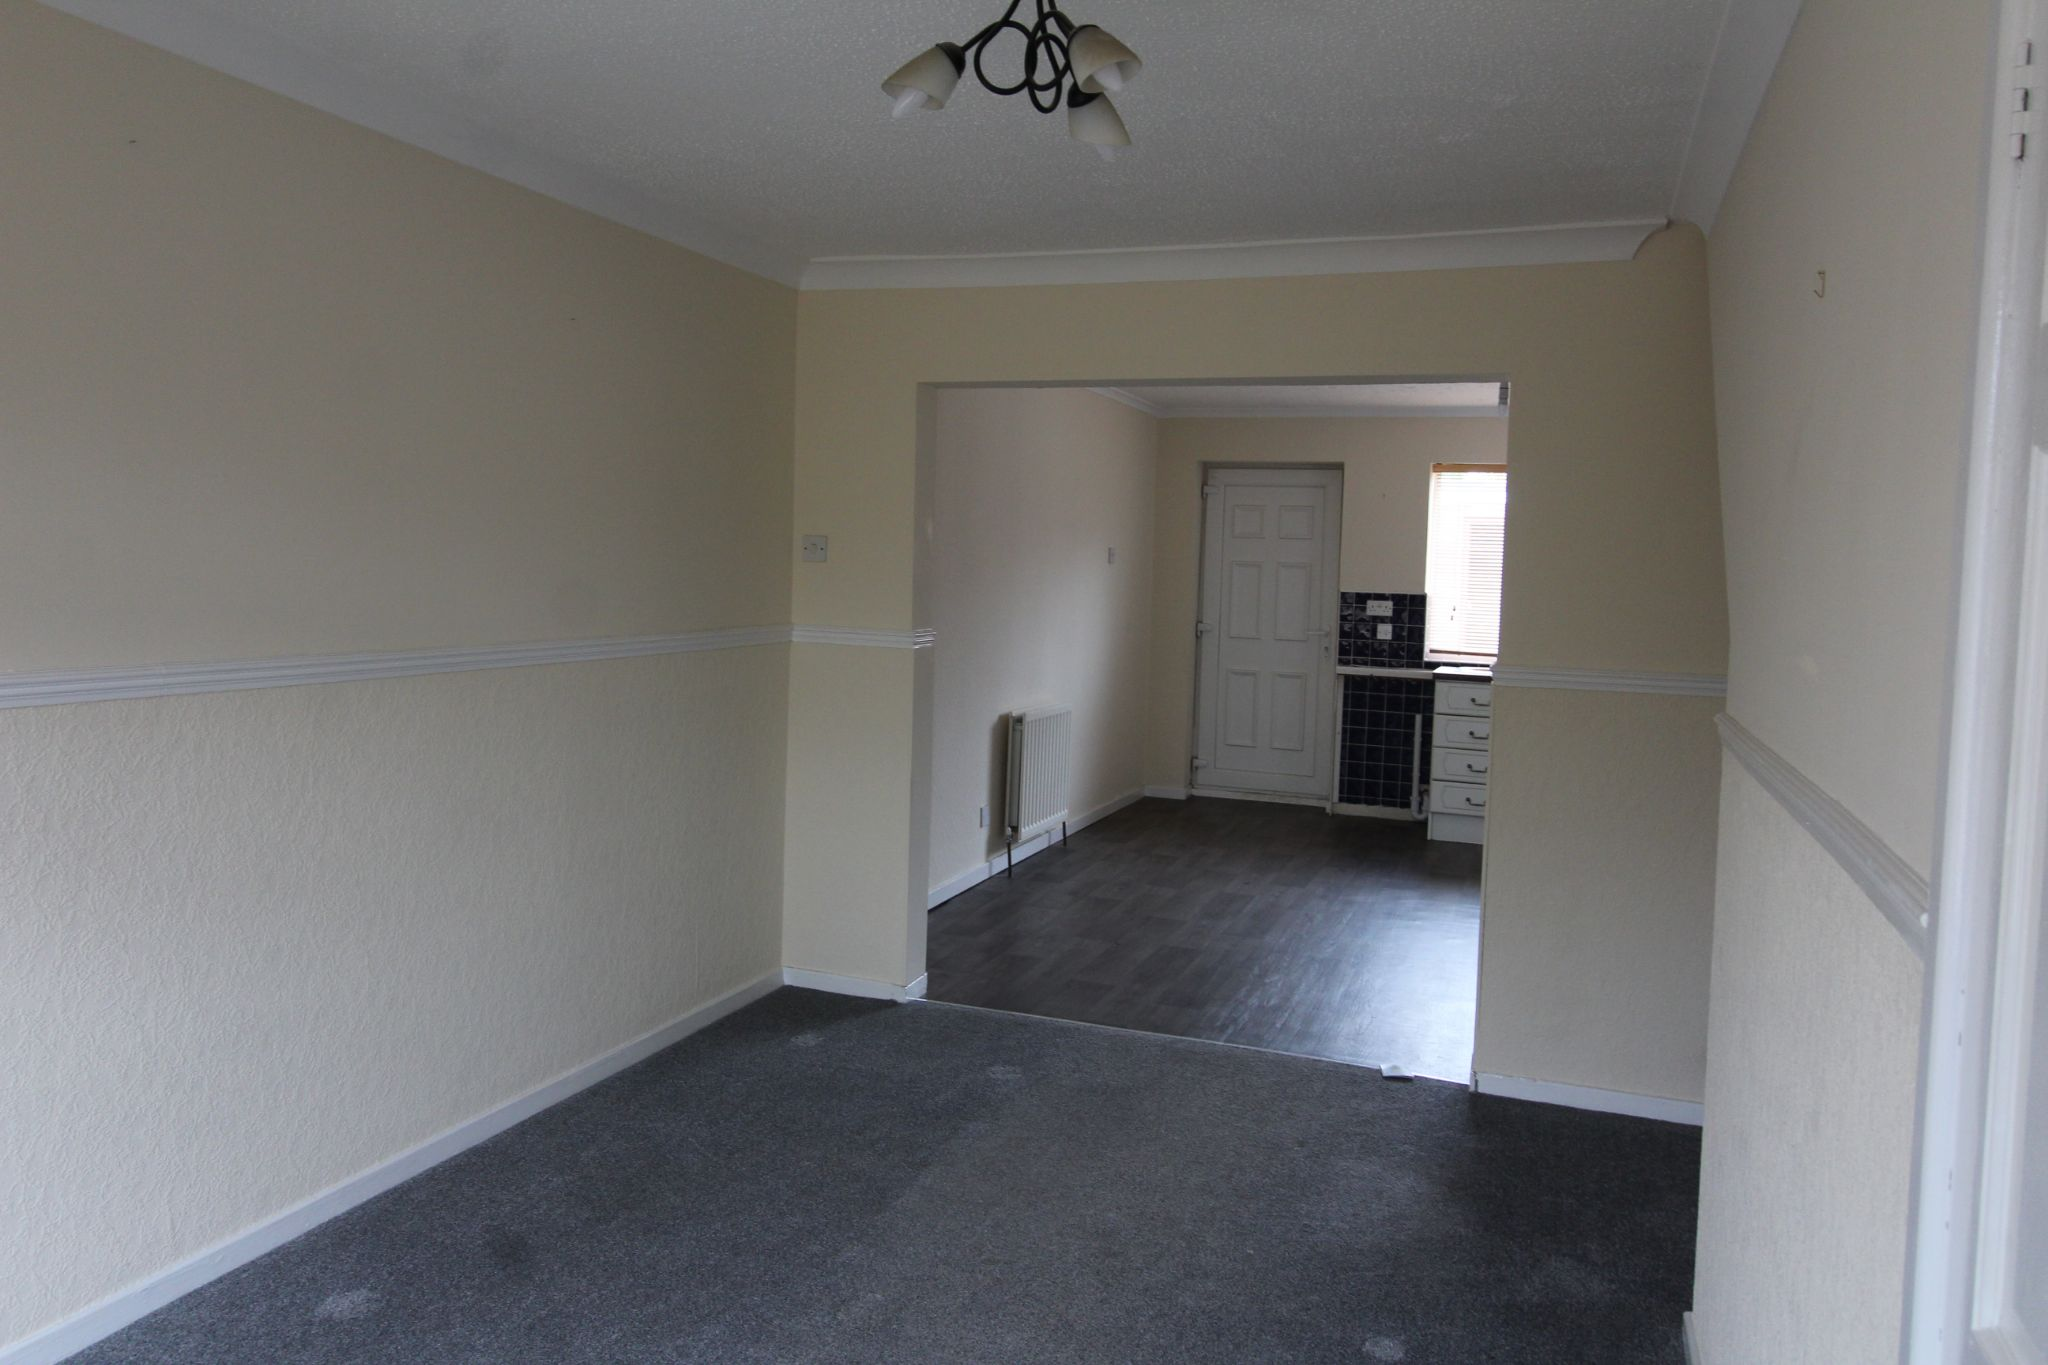 2 bedroom mid terraced house For Sale in Durham - Photograph 2.